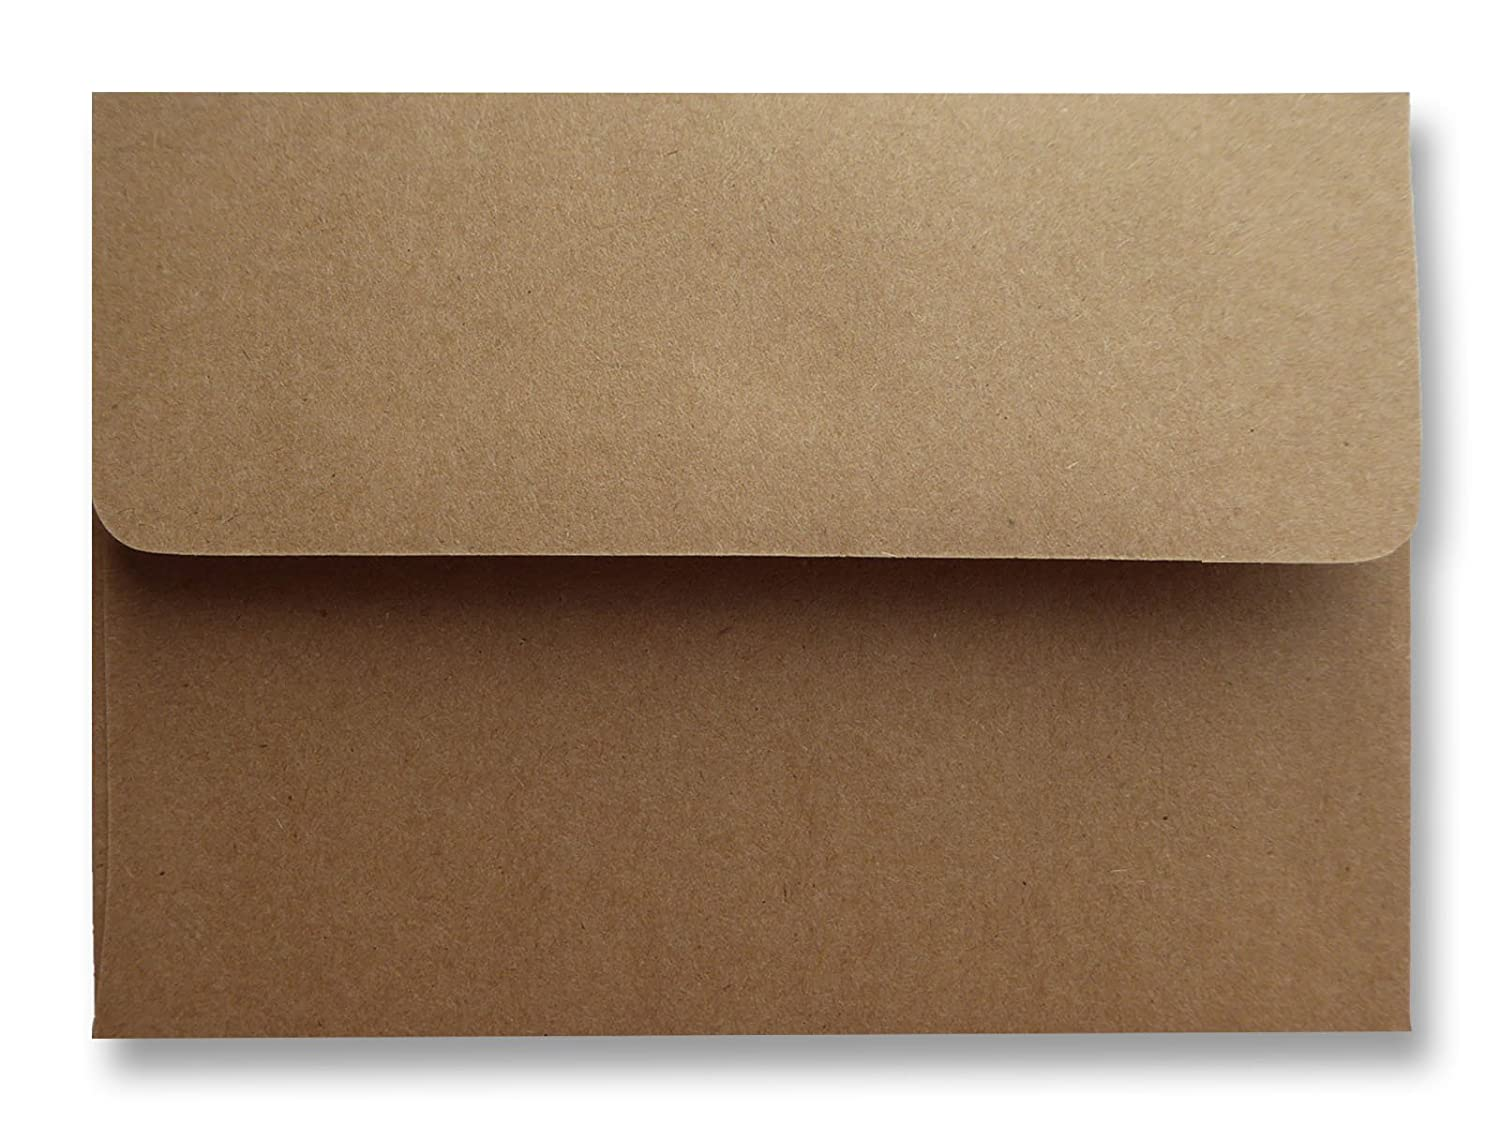 Kraft Grocery Bag Brown 50 Boxed 70lb A2 Envelopes for Weddings Announcements Enclosures from The Envelope Gallery